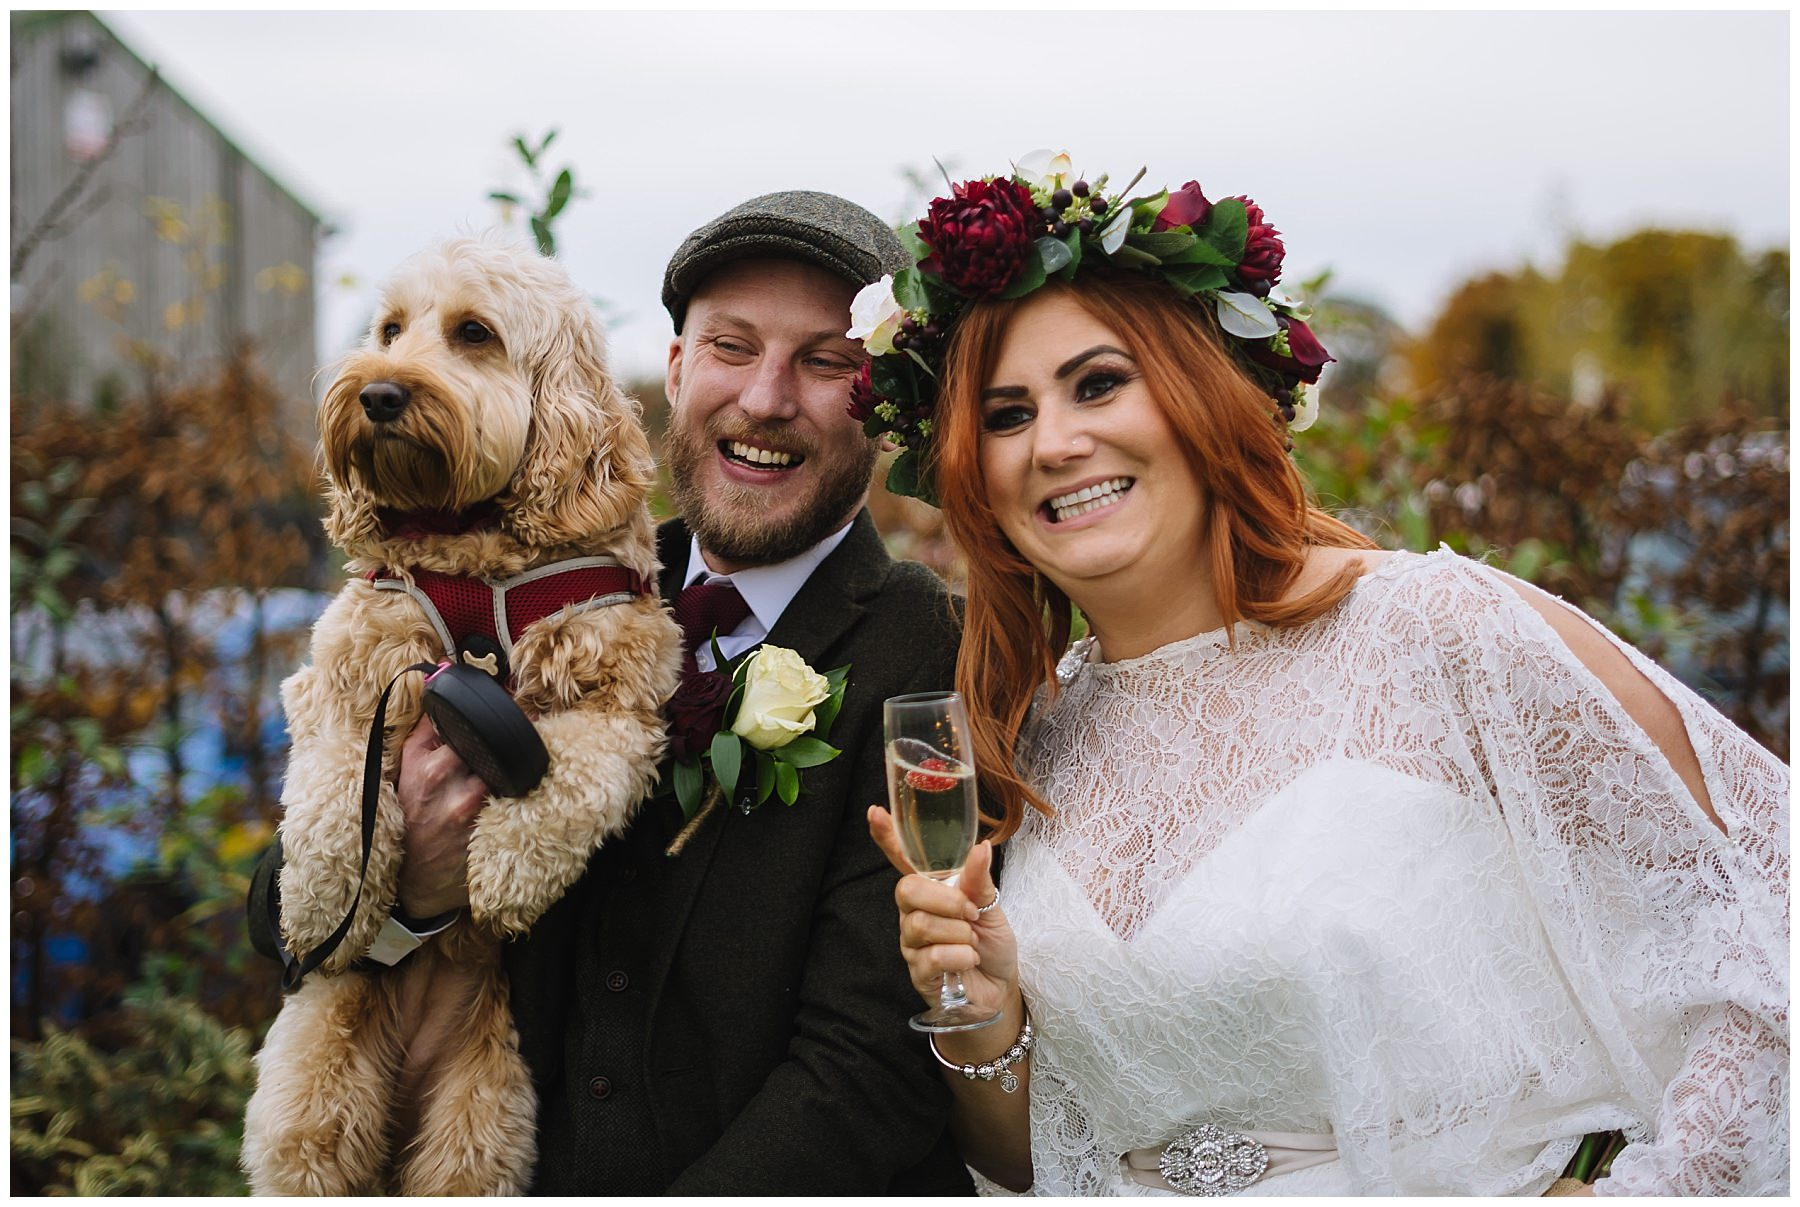 Dogs at weddings inspiration